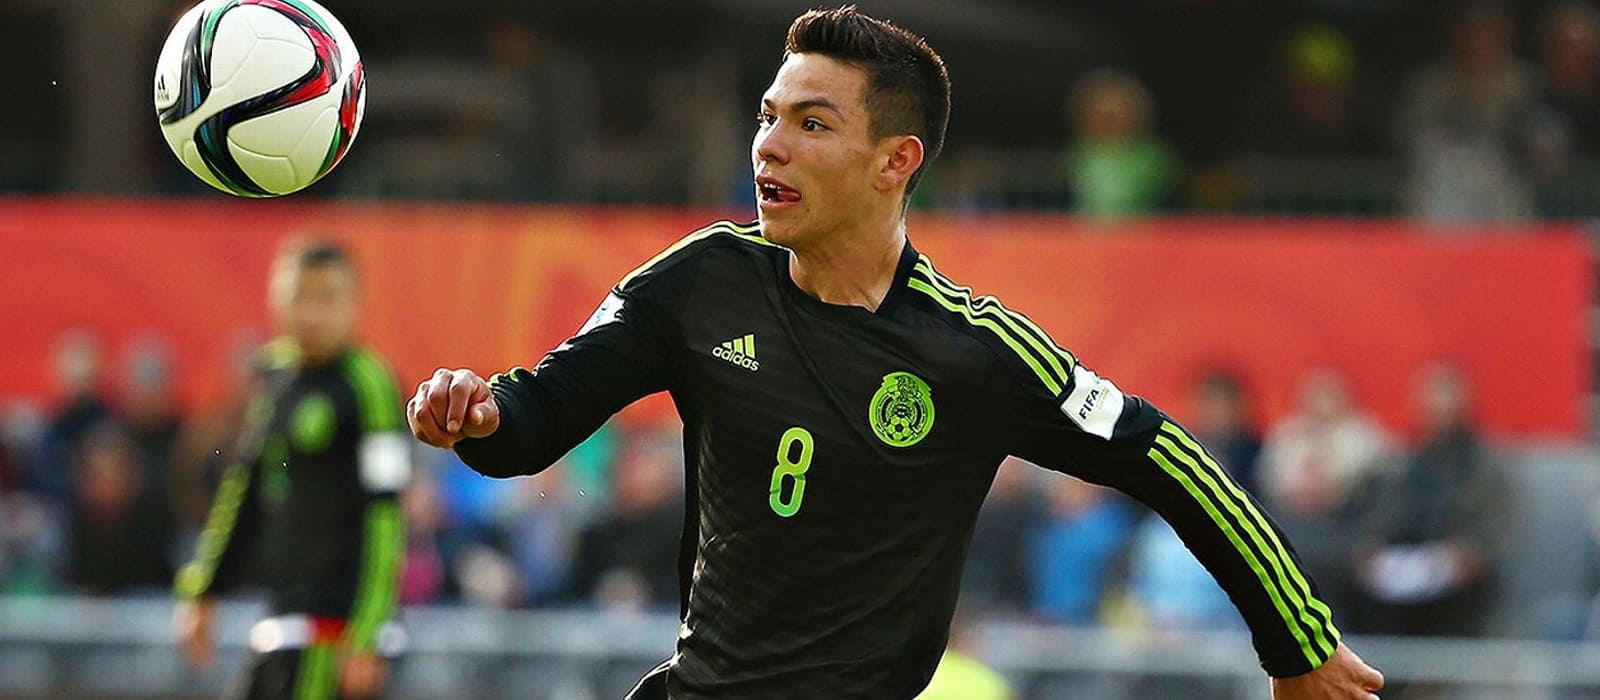 Report: PSV Eindhoven determined to keep Hirving Lozano amid Manchester United links